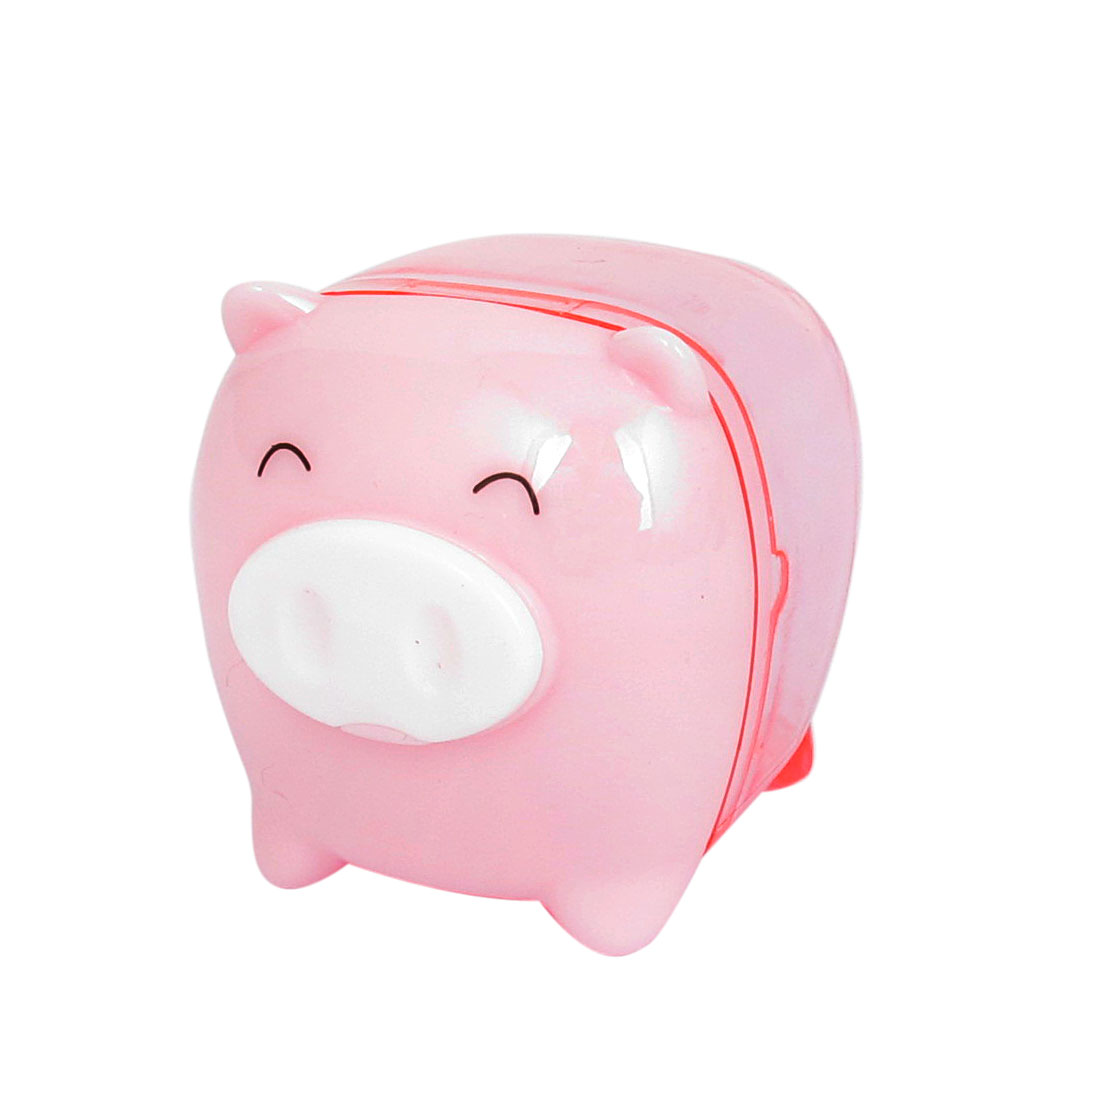 Pink Pig Design Plastic Housing Pencil Sharpener Tool for Students